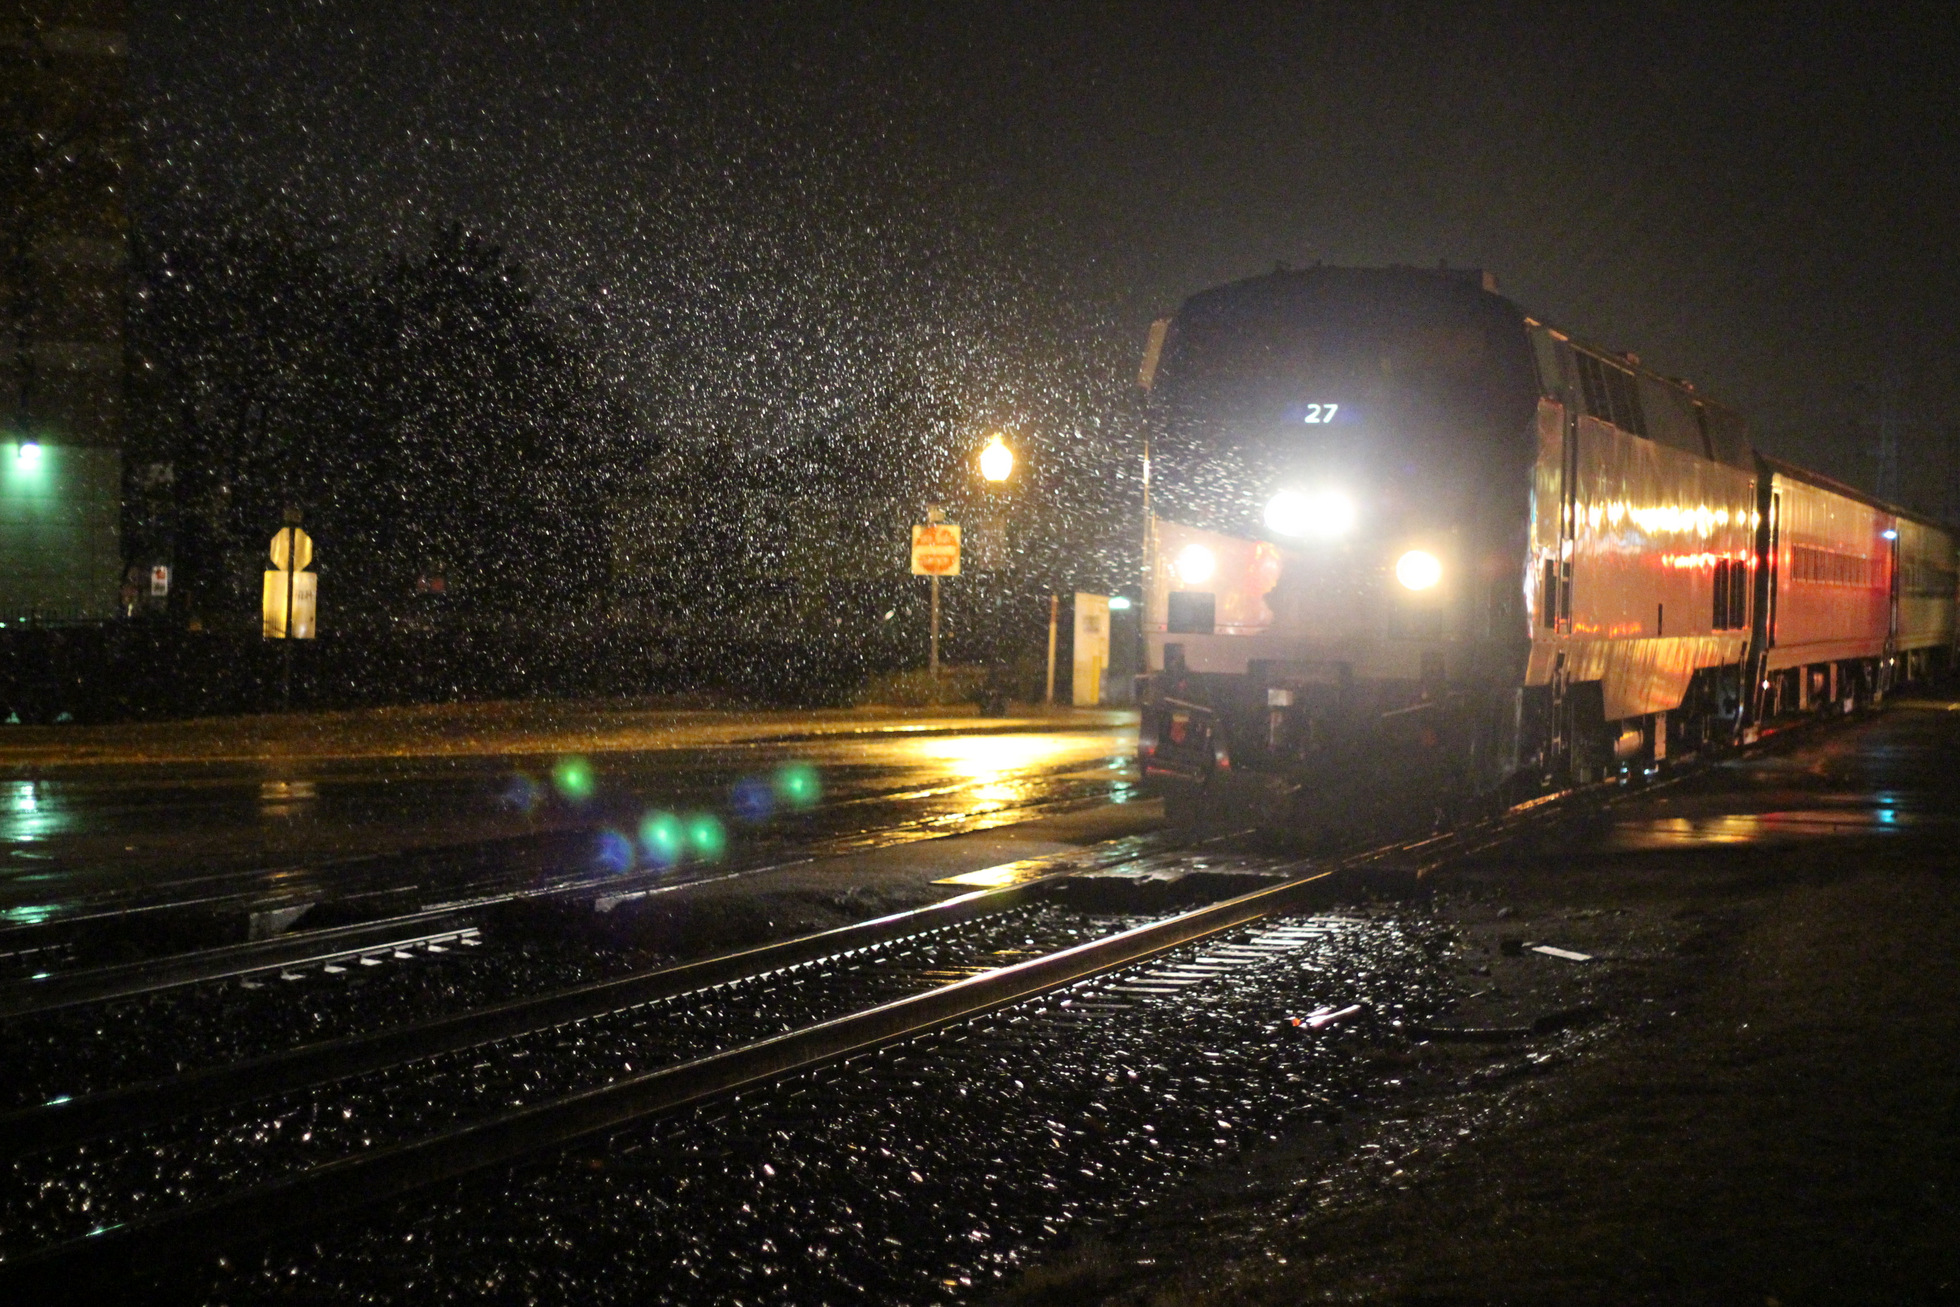 Amtrak Wolverine at Royal Oak during night rain, one of the best things to do in Austin Texas